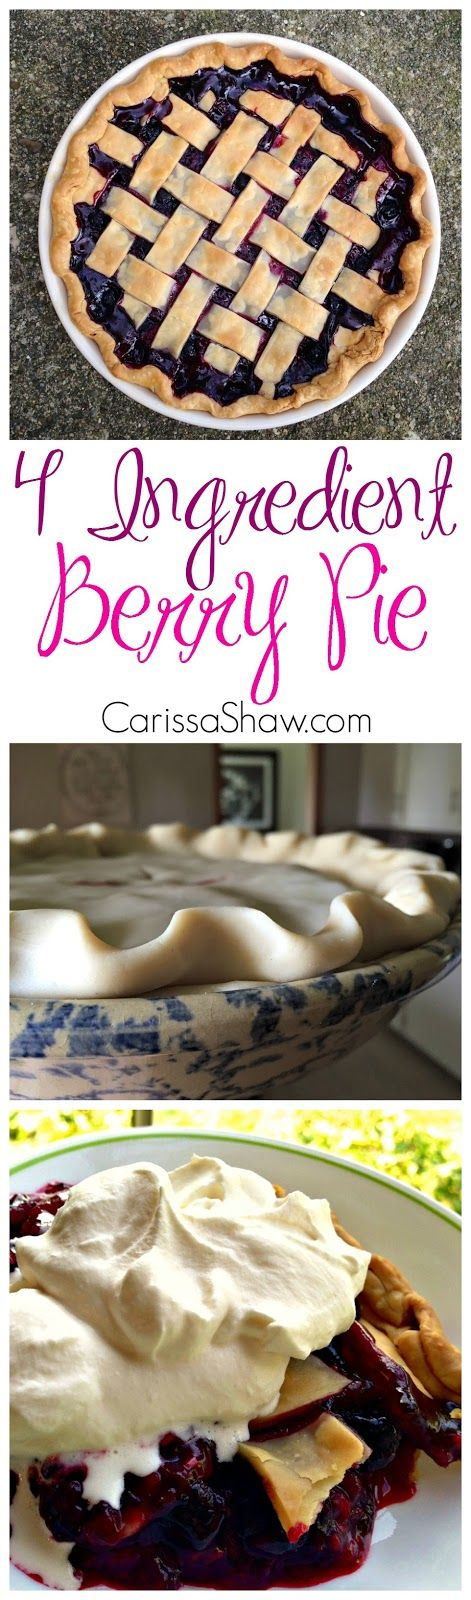 4 Ingredient Berry Pie | Perfect quick recipe for the 4th of July!